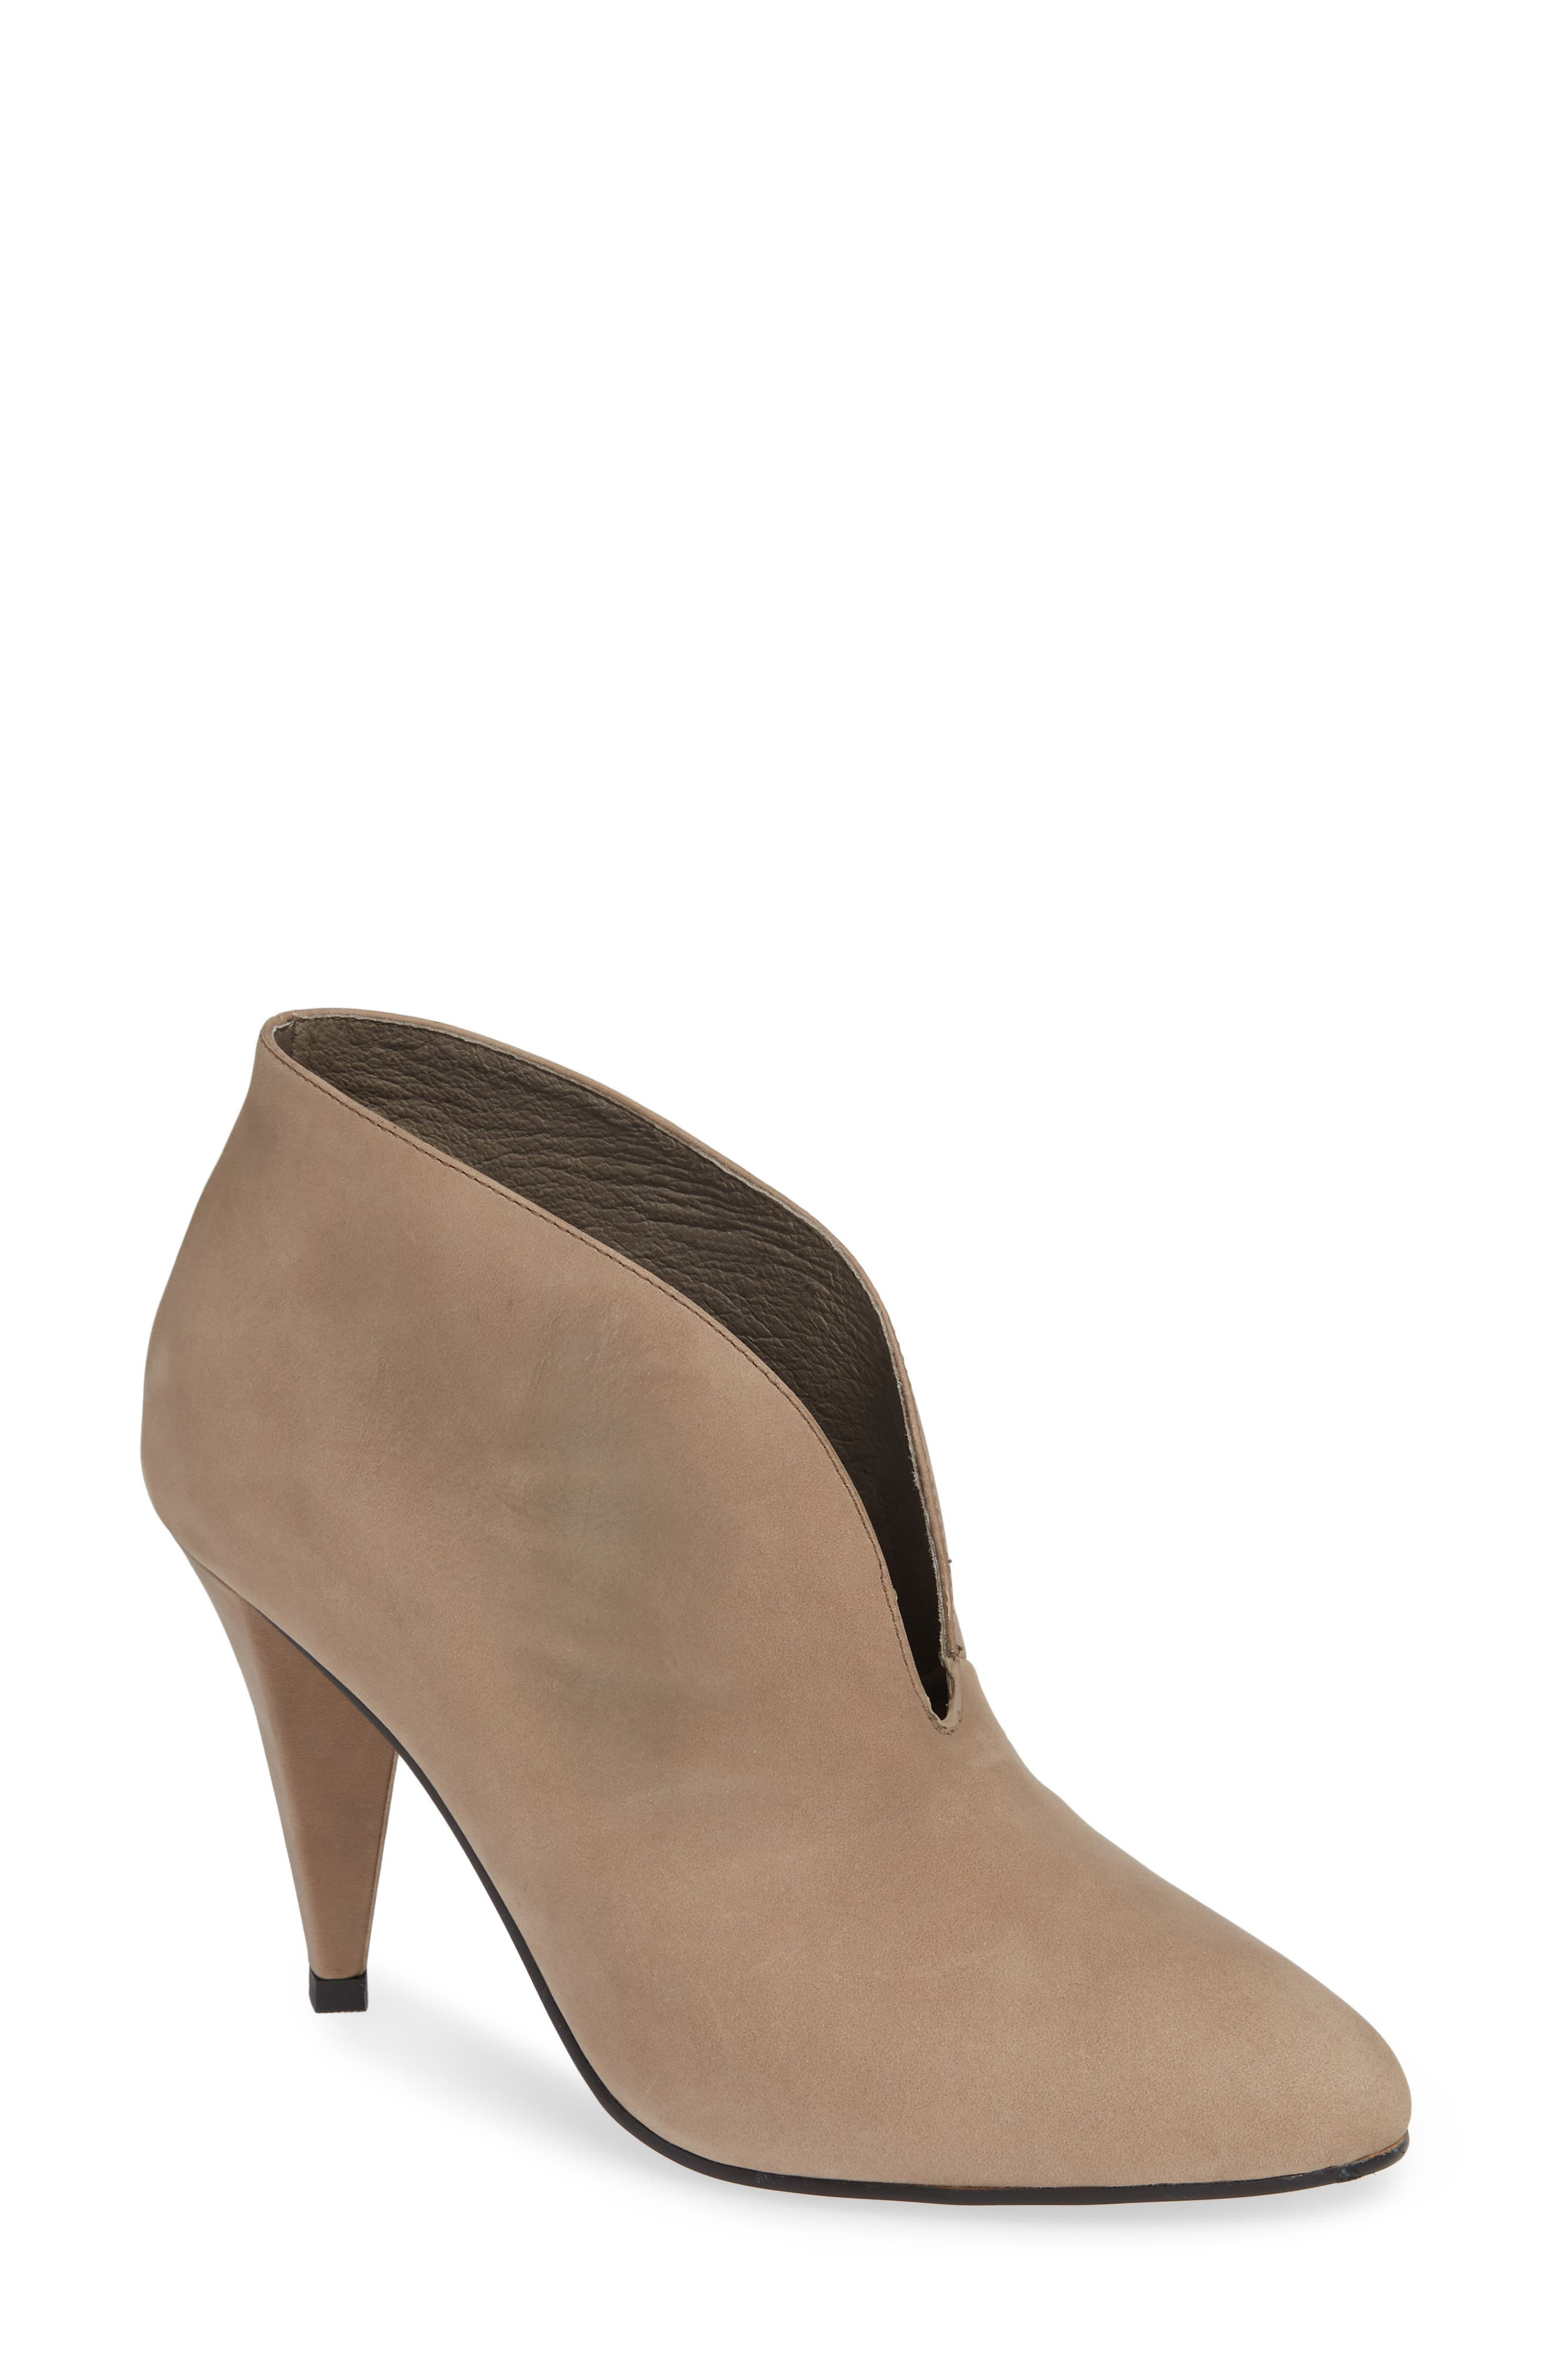 ALIAS MAE Coco Pump in Smoke Leather